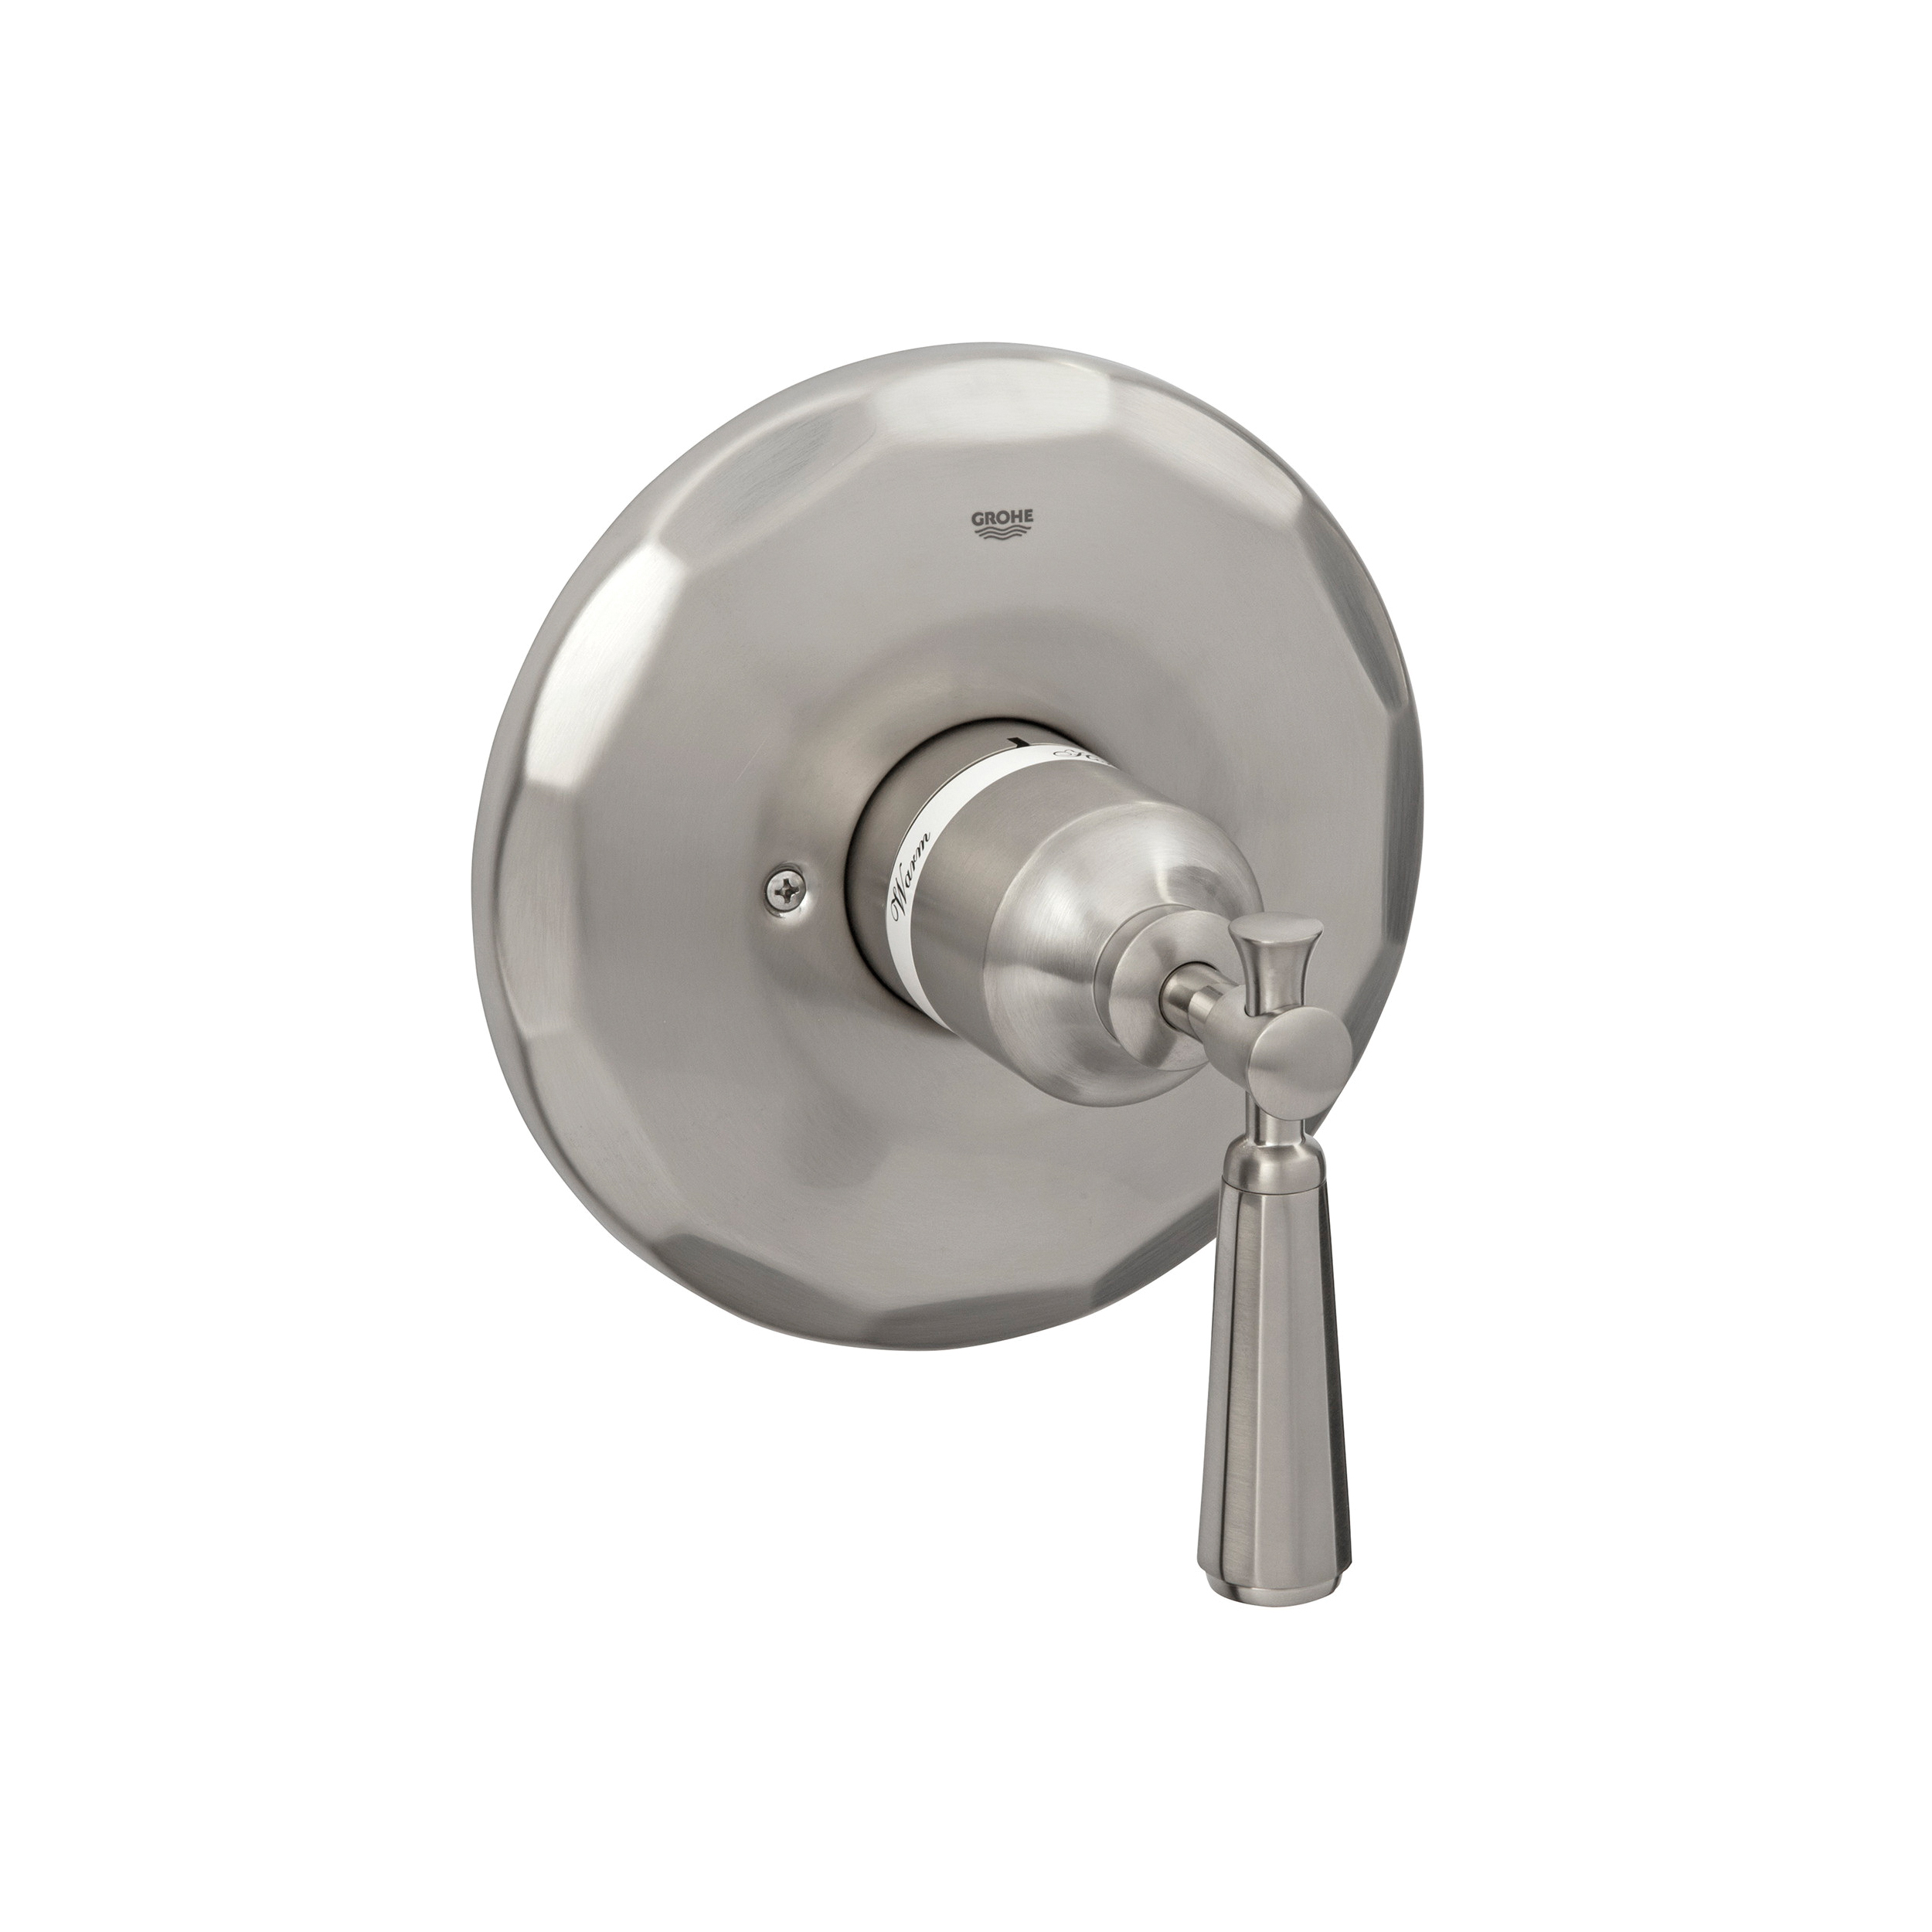 GROHE 19267EN0 Kensington® Valve Trim Set, Brushed Nickel